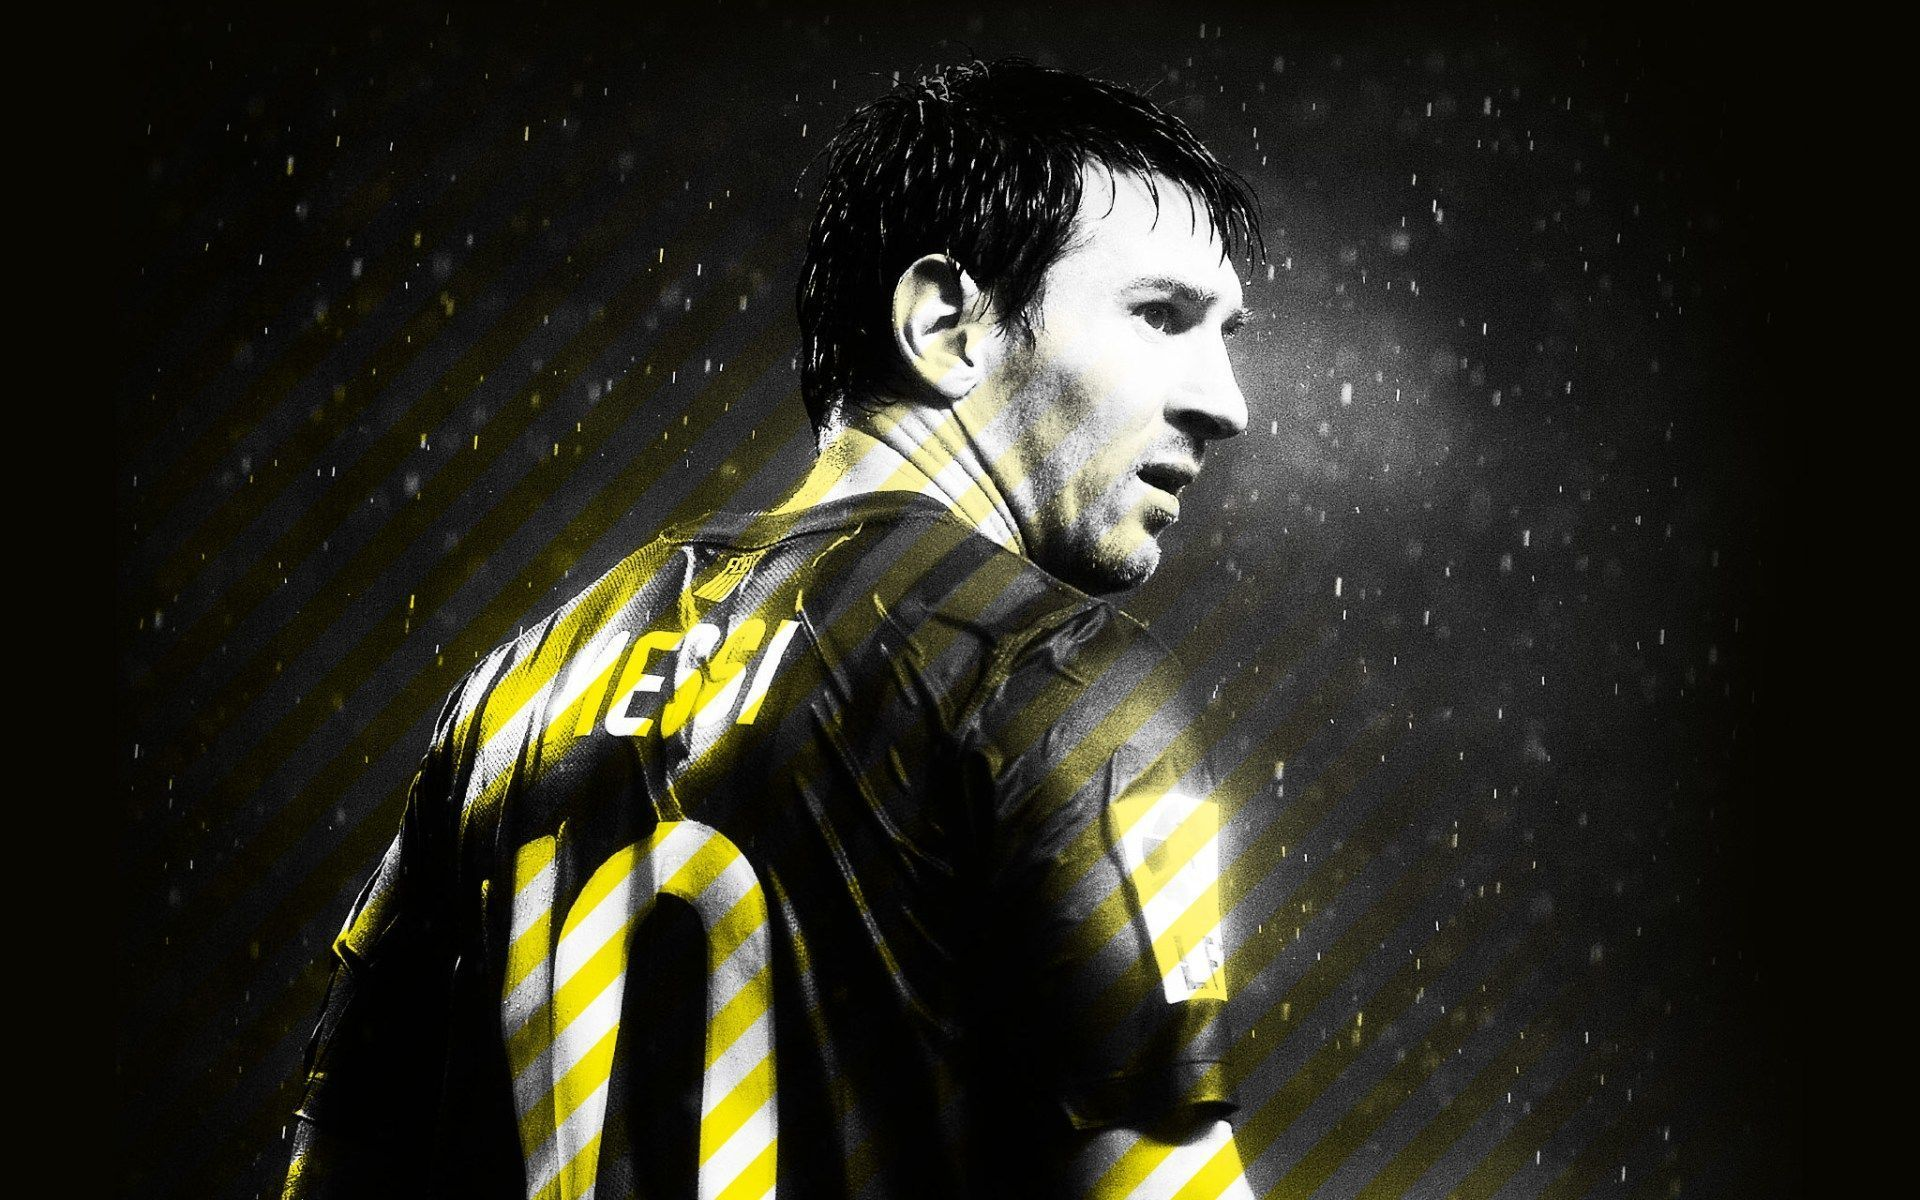 Lionel Messi Hd Wallpapers Lionel Messi Lionel Messi Wallpapers Messi